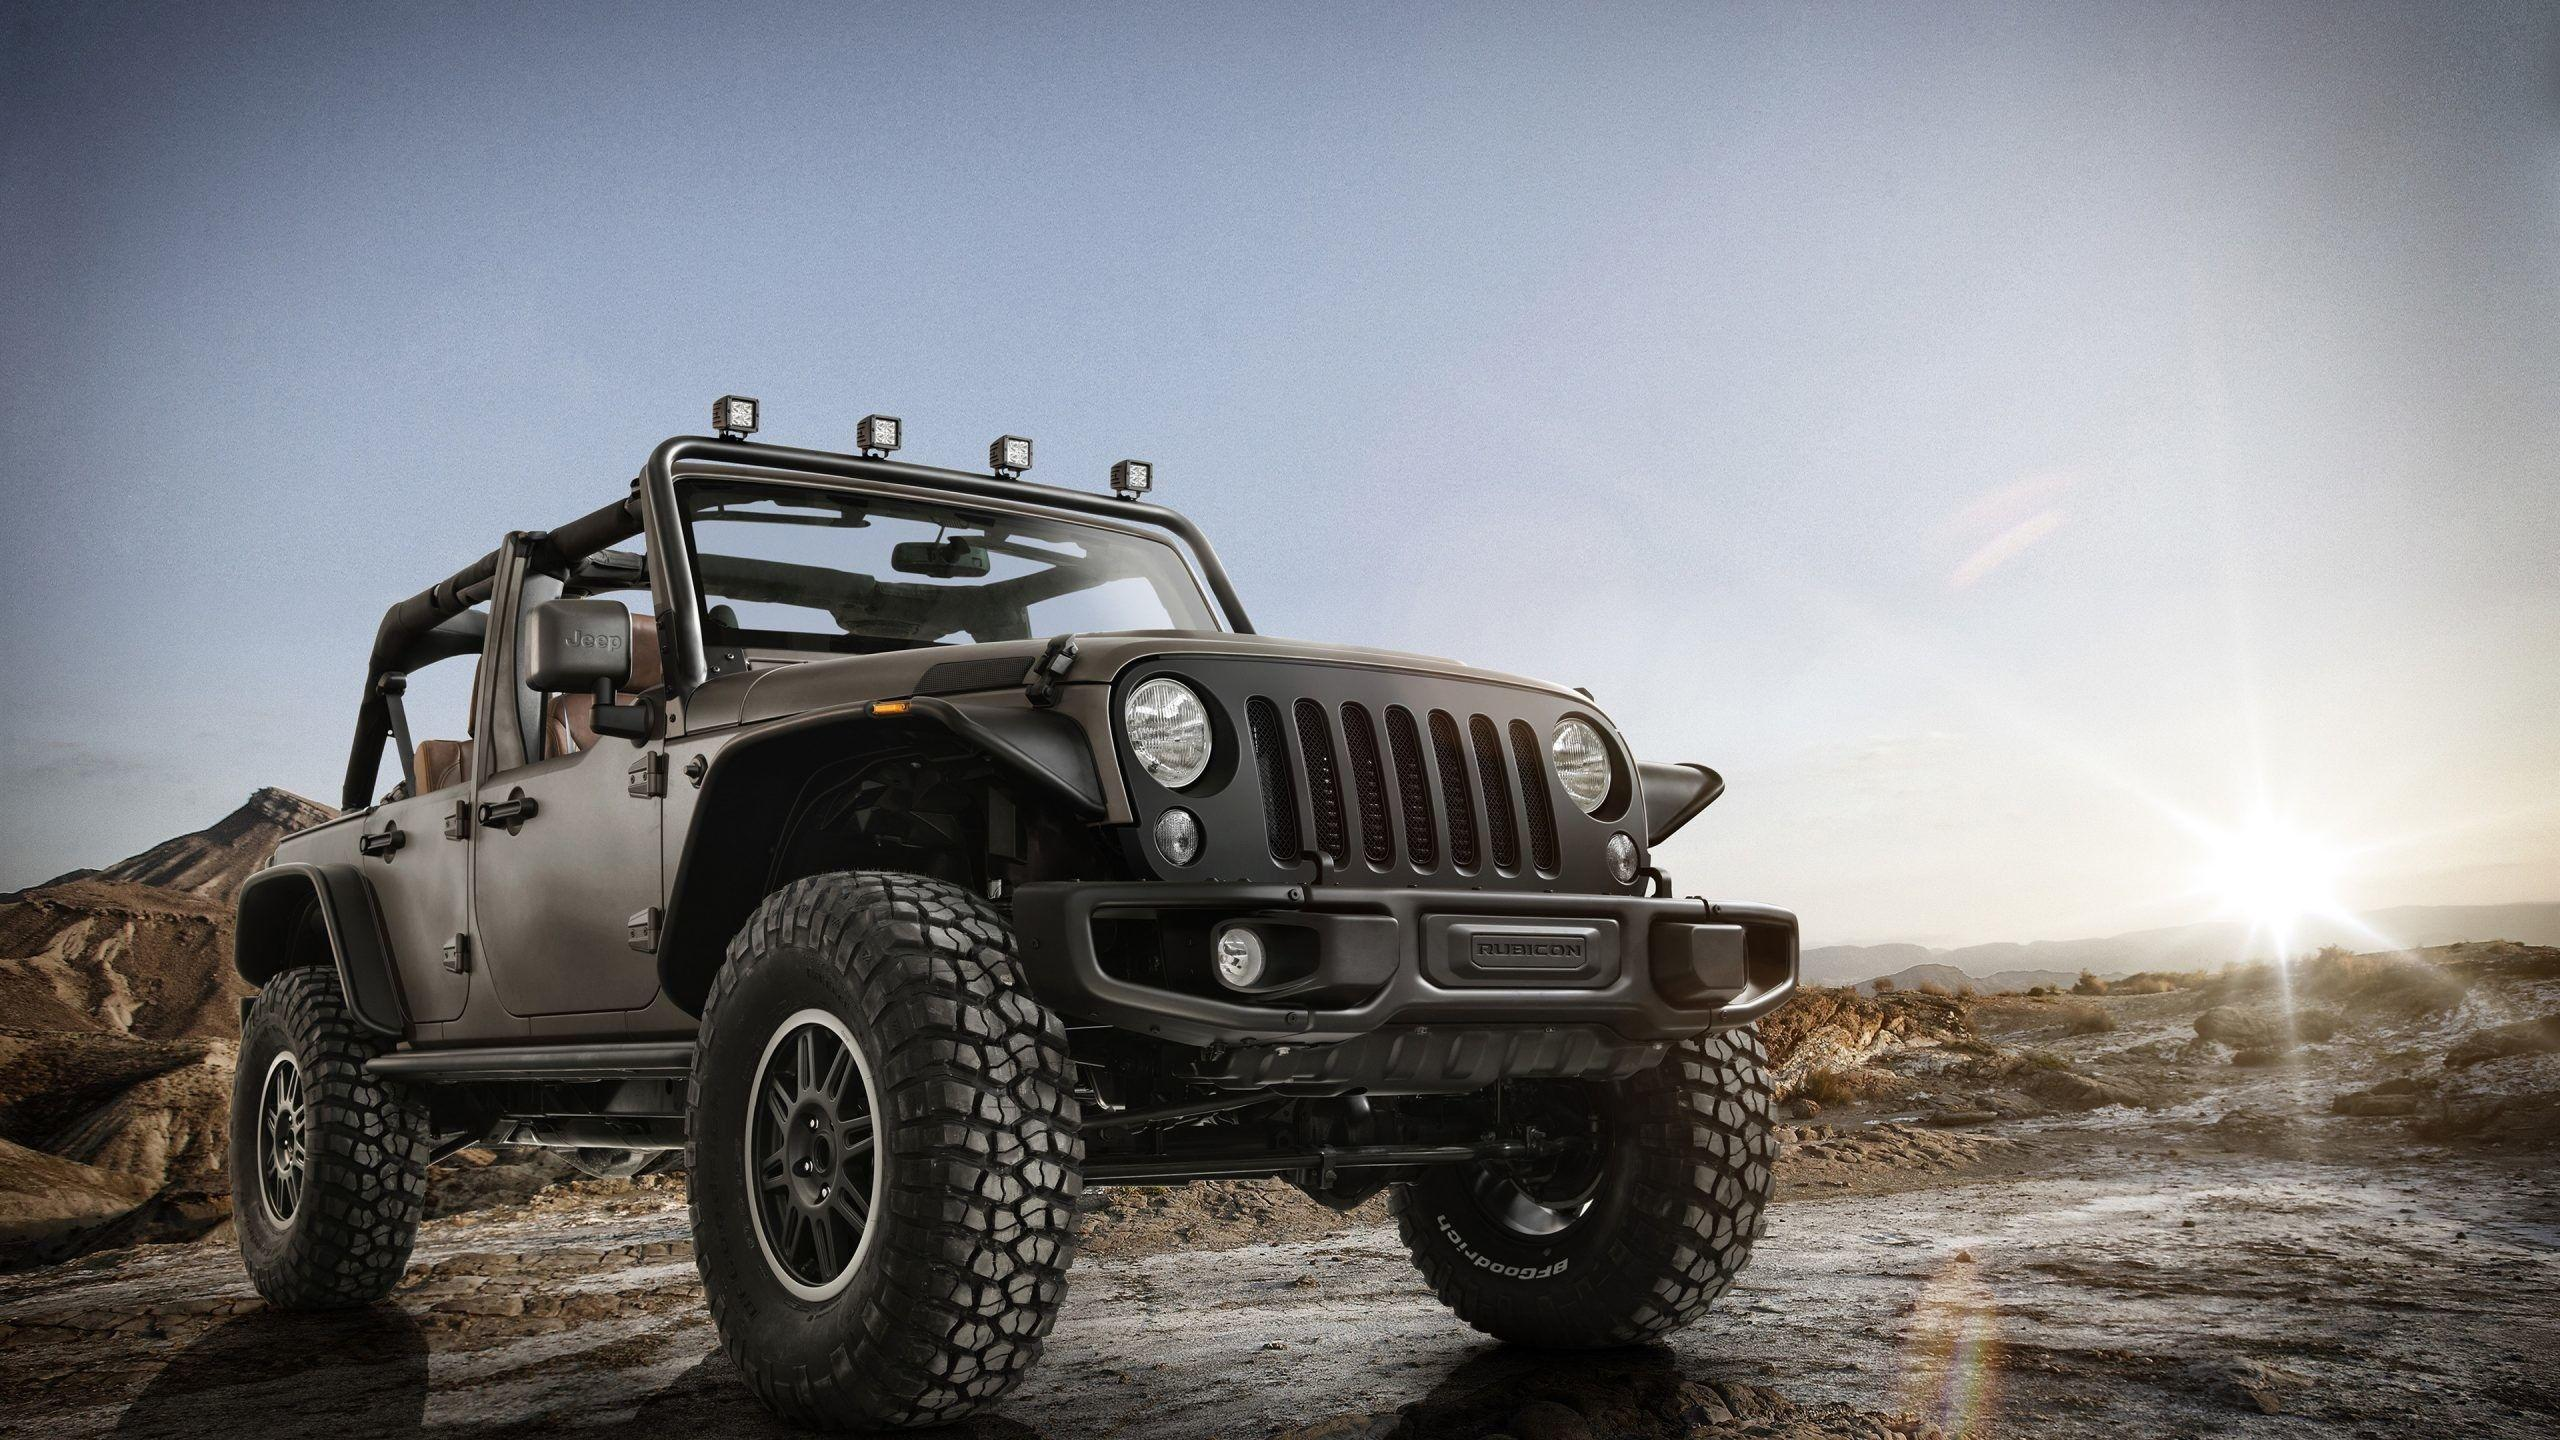 Jeep Wrangler Wallpapers HD